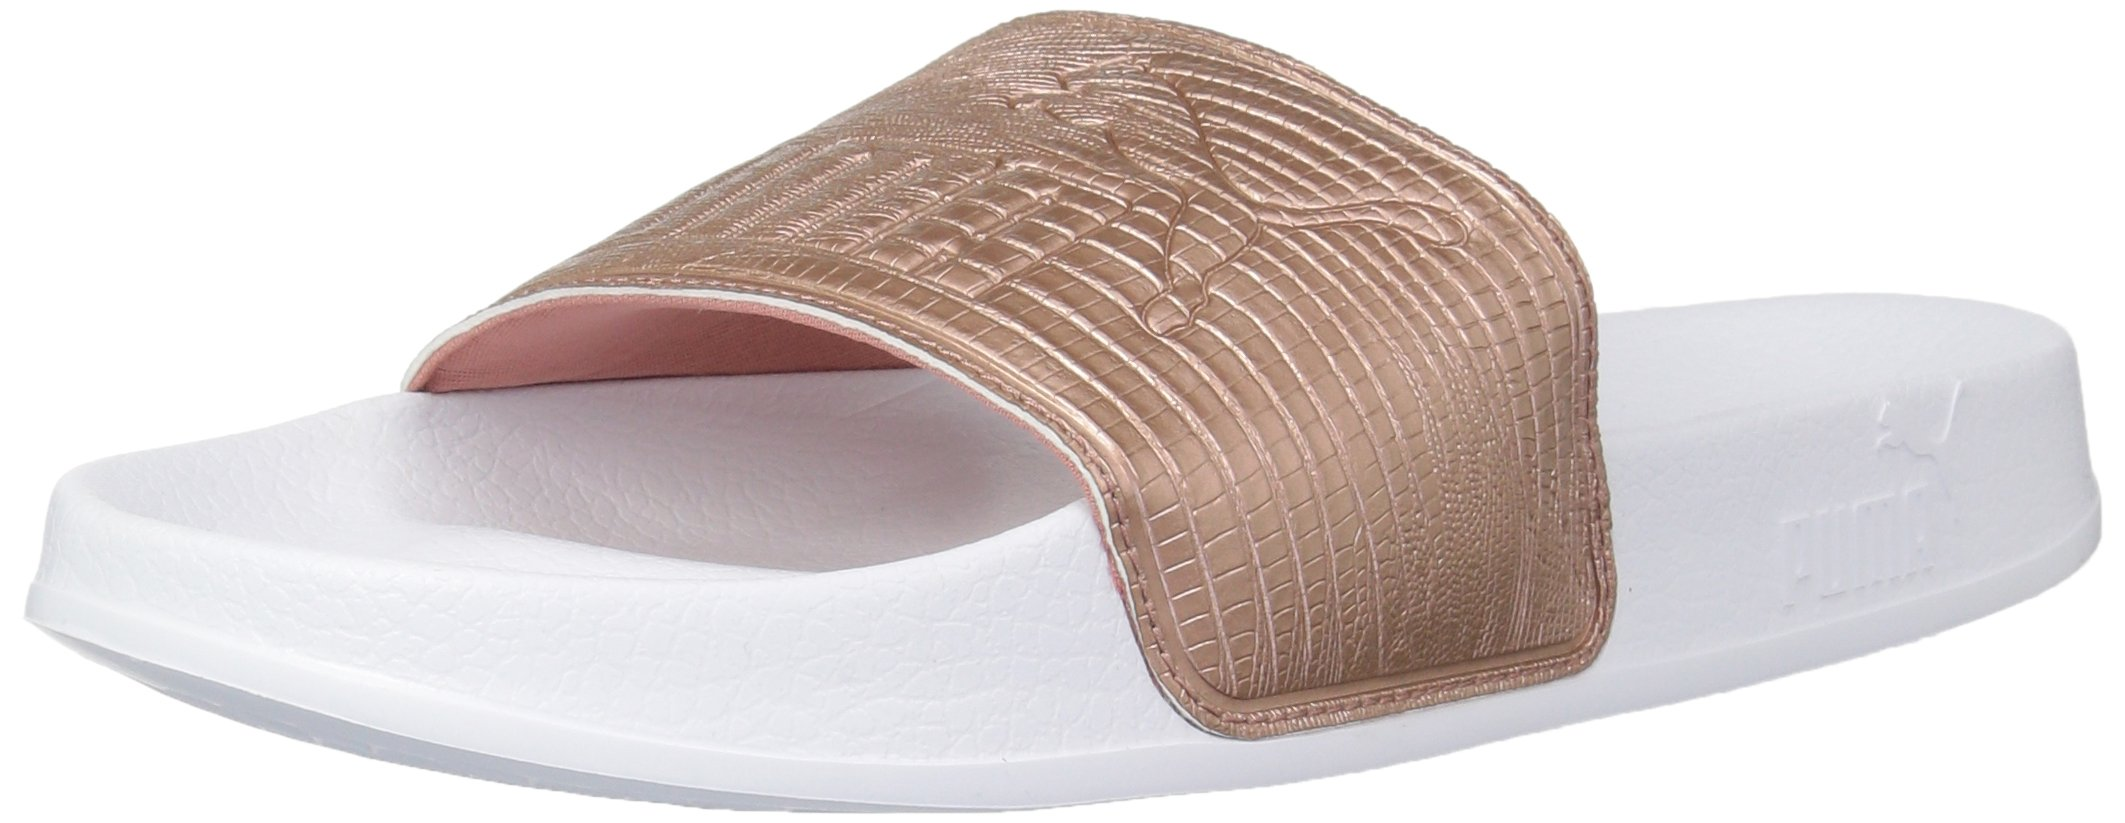 PUMA Women's Leadcat Leather Wn Slide Sandal, Copper Rose White, 10.5 M US